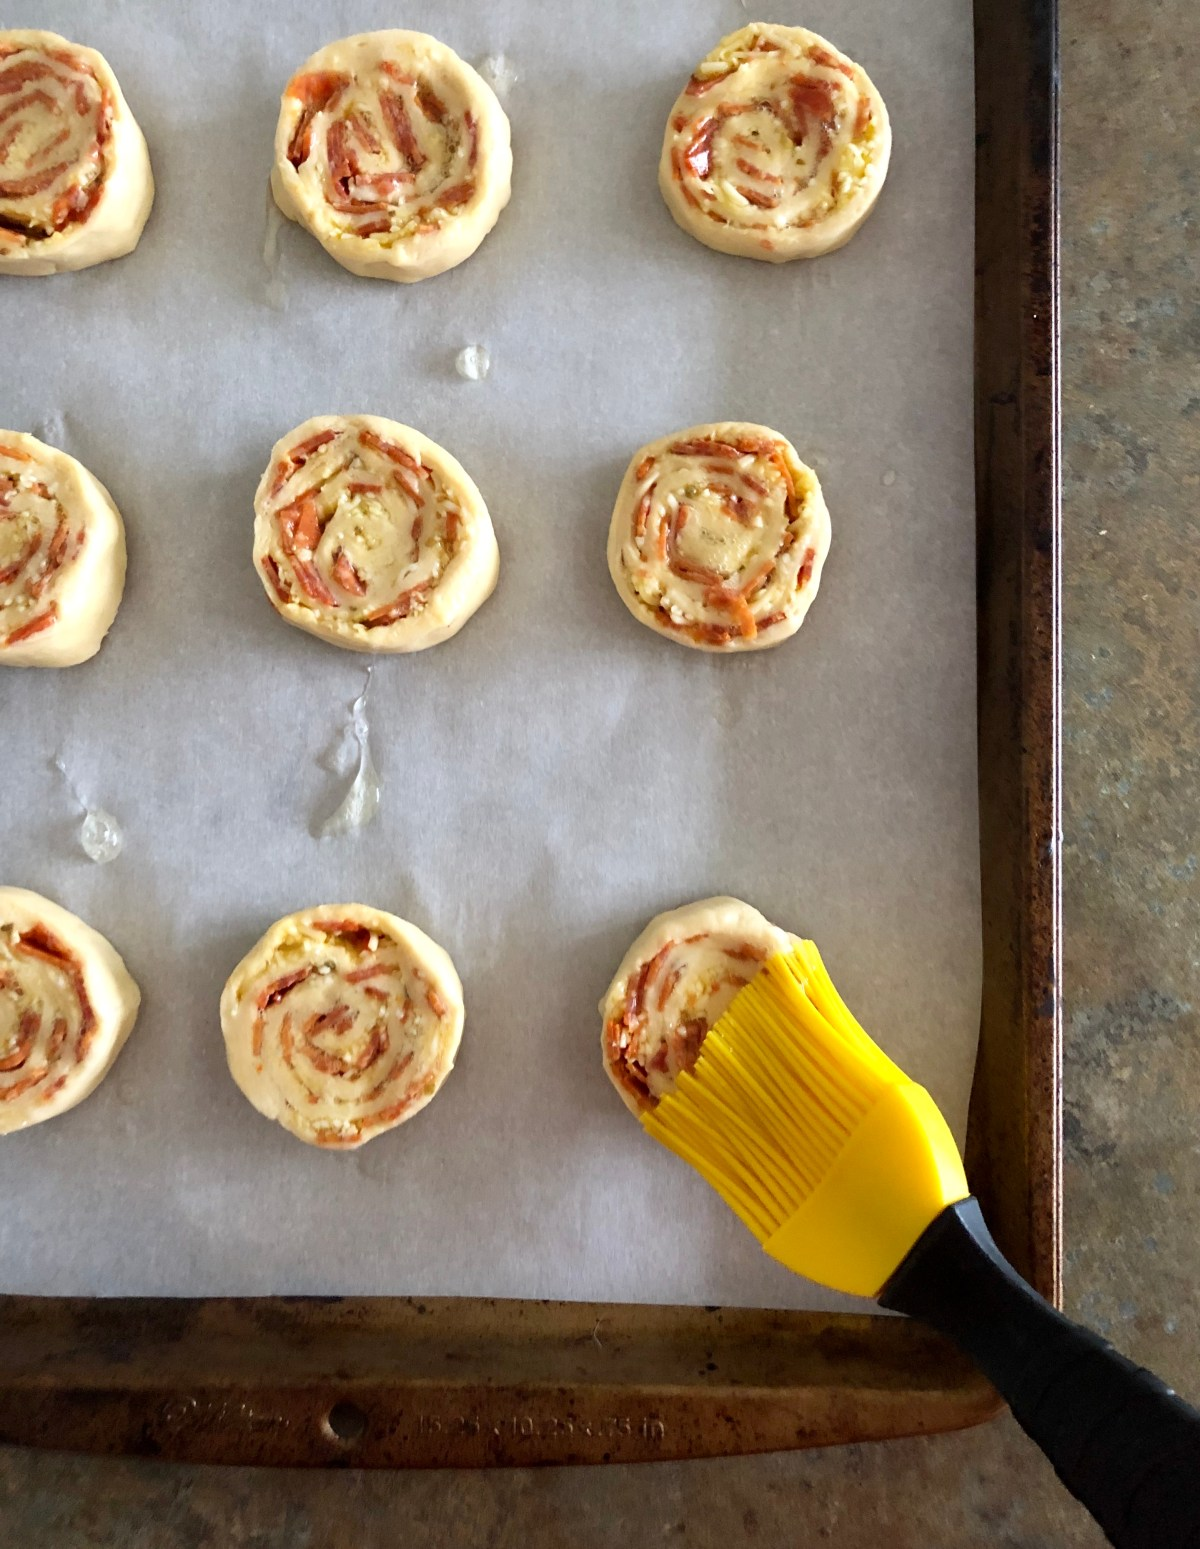 Pizza Pinwheel dough slices place on a baking sheet lined with parchment paper.